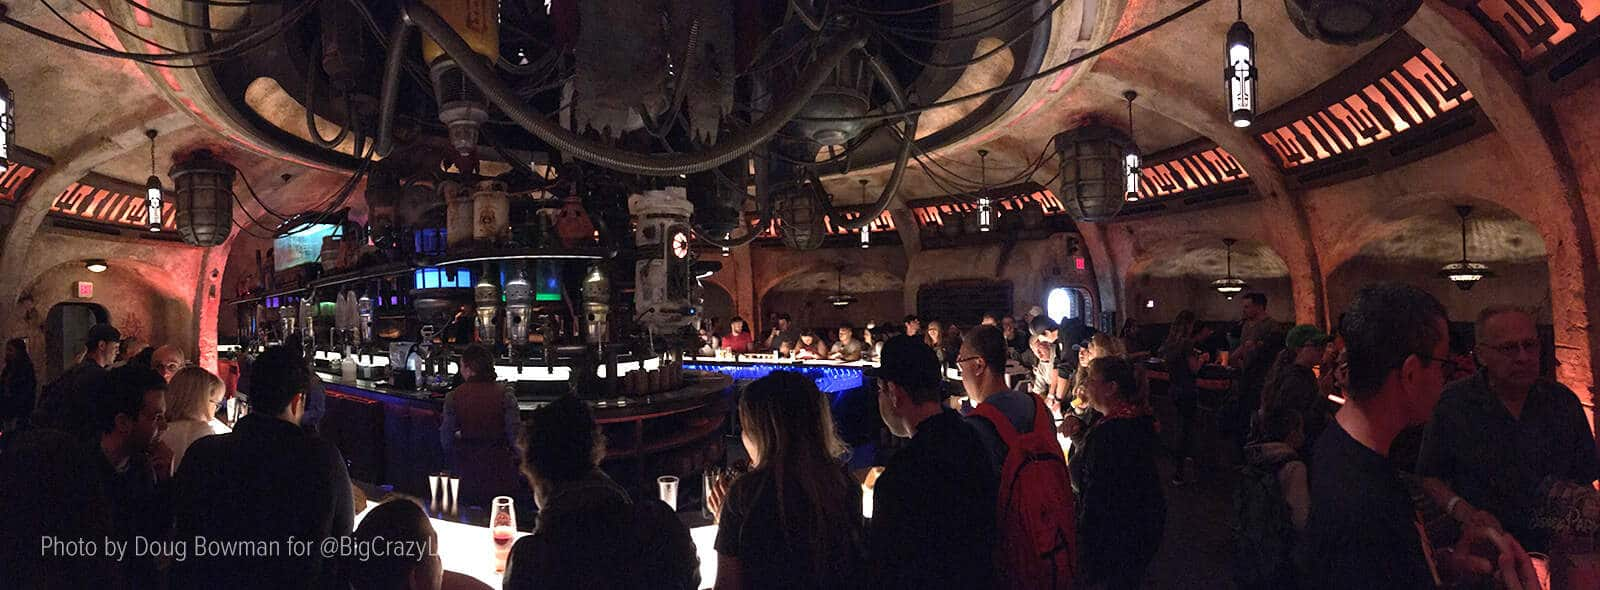 A panoramic shot of the interior of Oga's Cantina